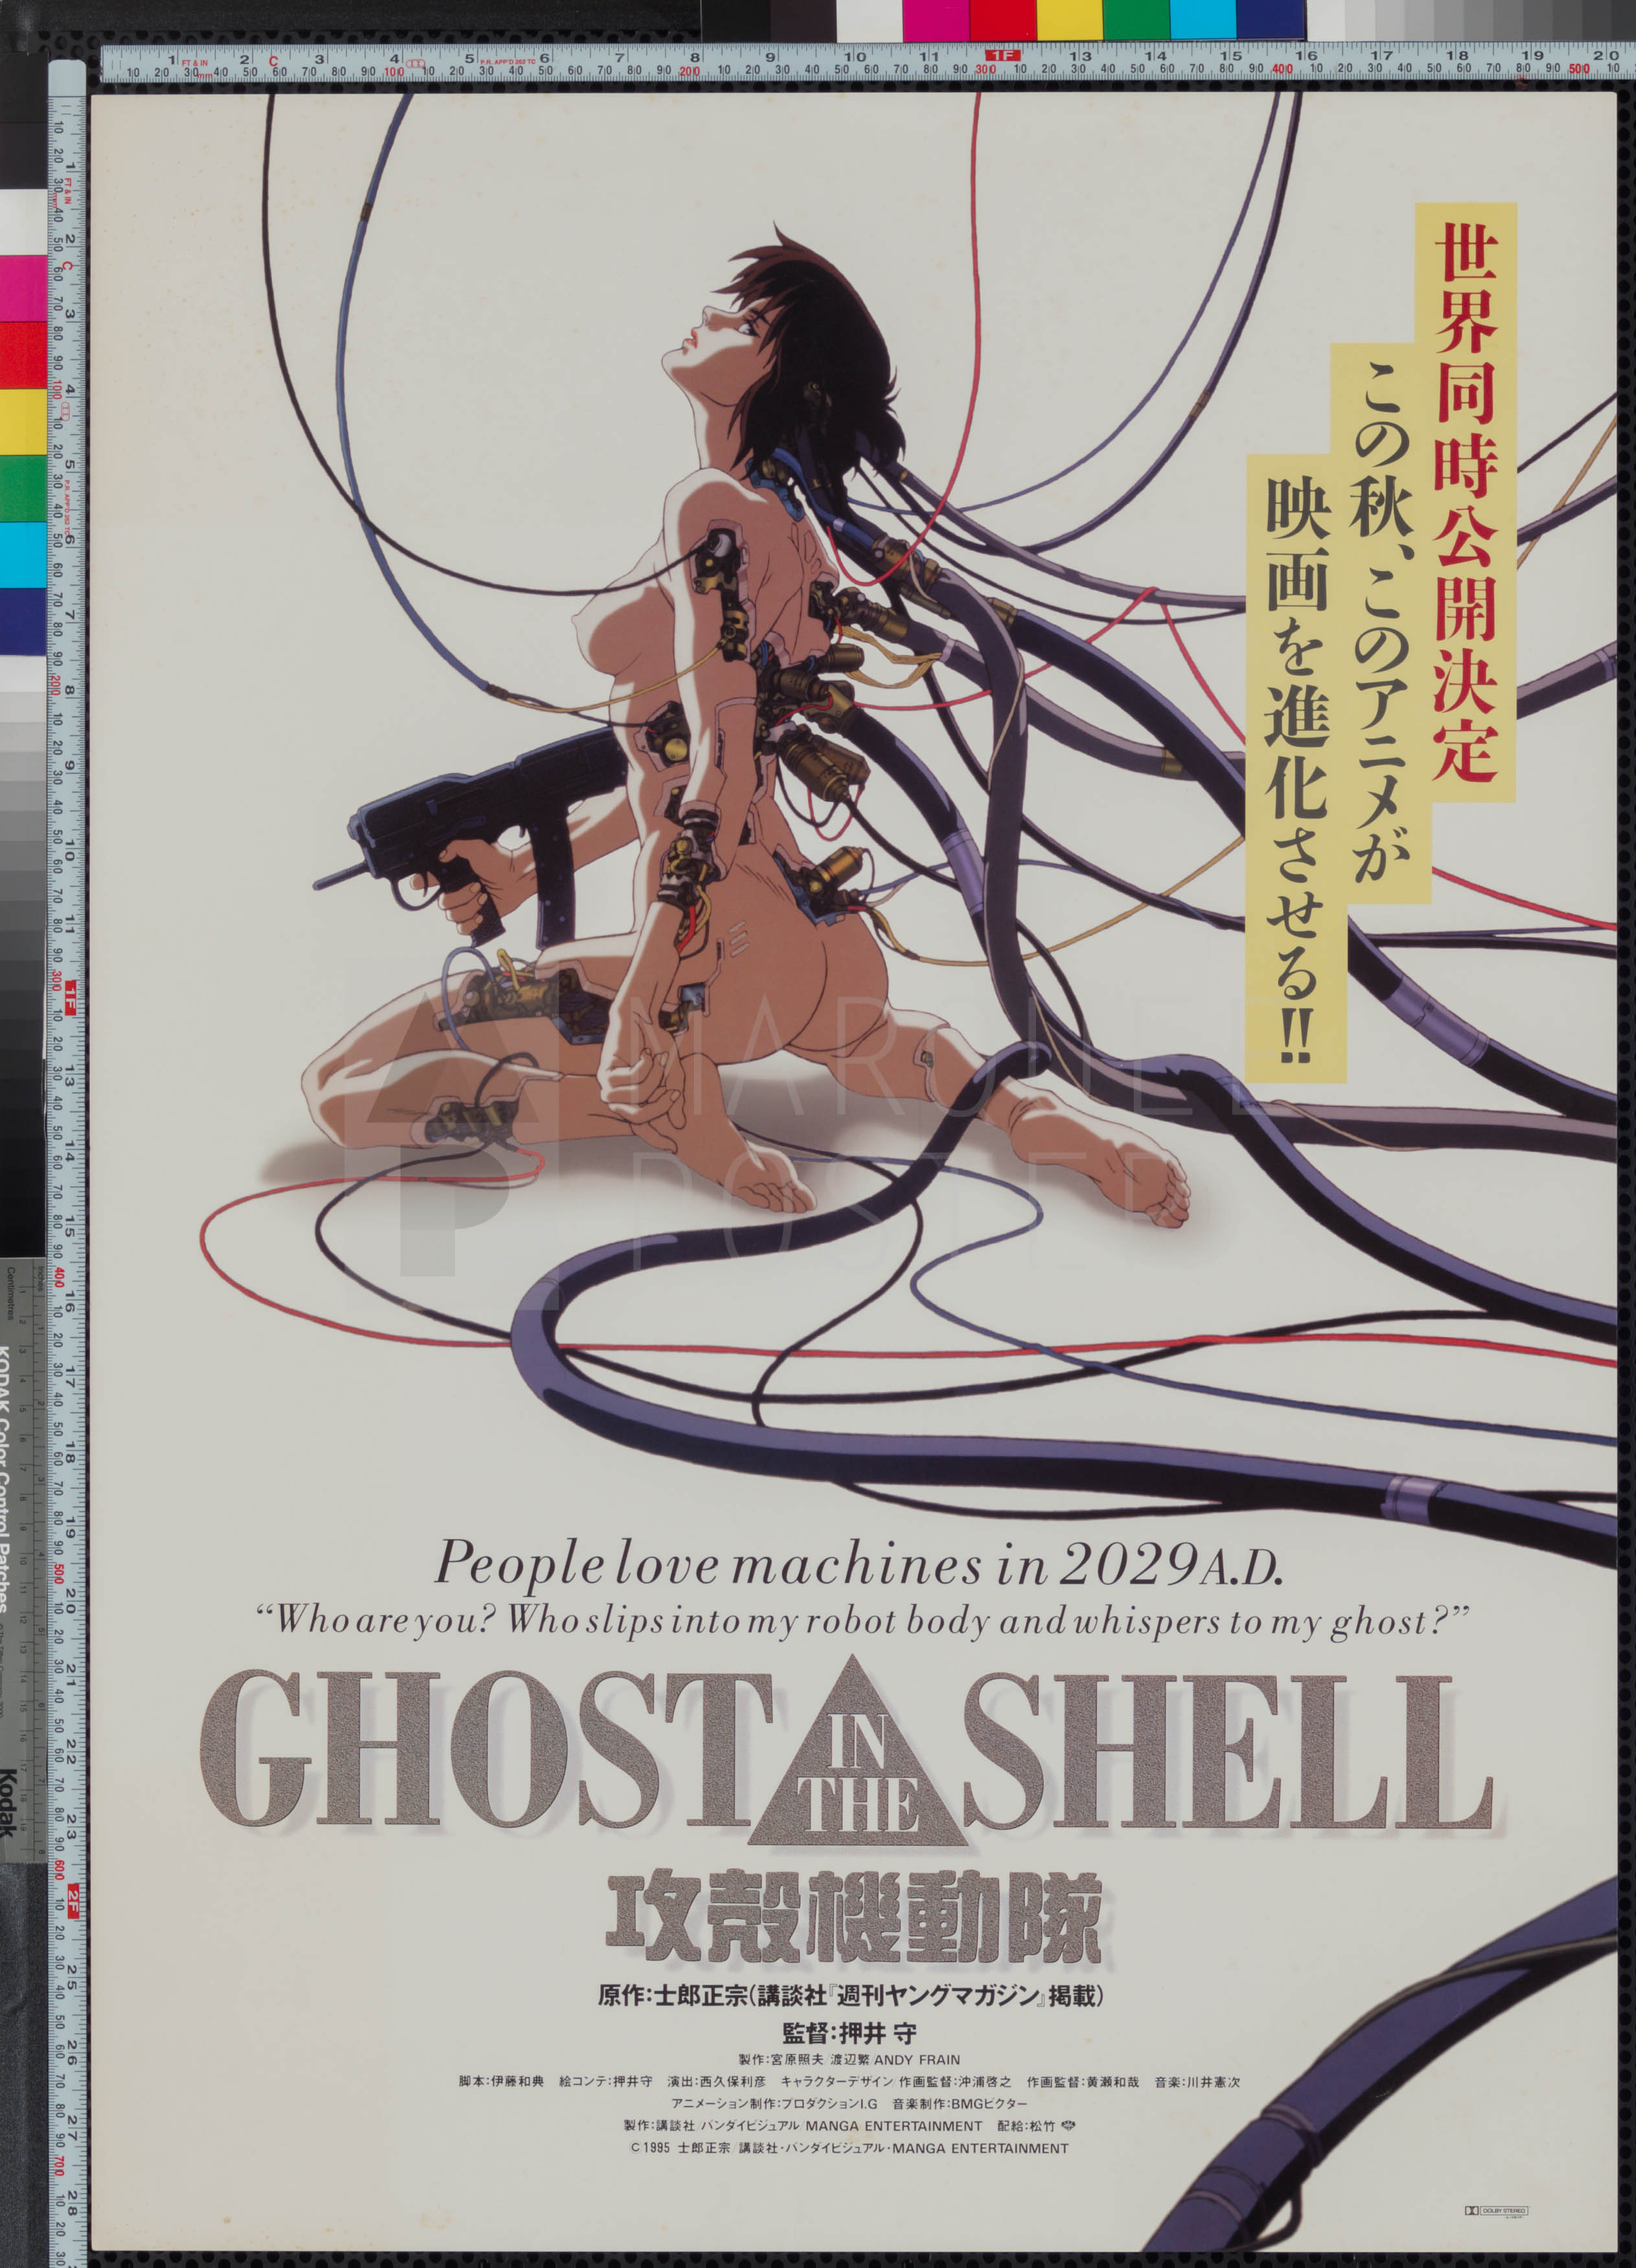 18-ghost-in-the-shell-body-style-japanese-b2-1995-02